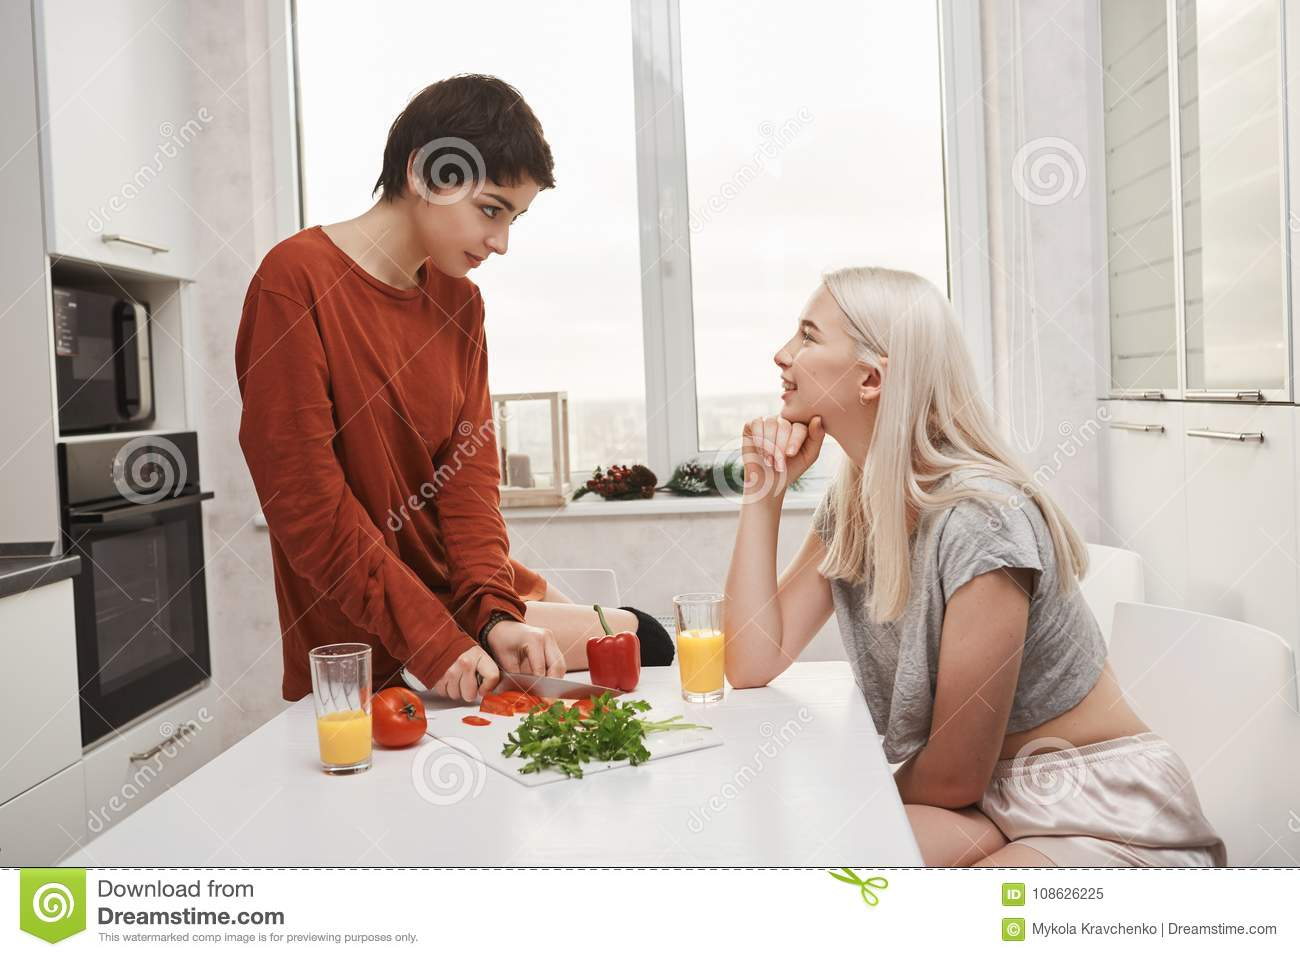 Portrait Of Two Woman Sitting In Kitchen Drinking Juice And